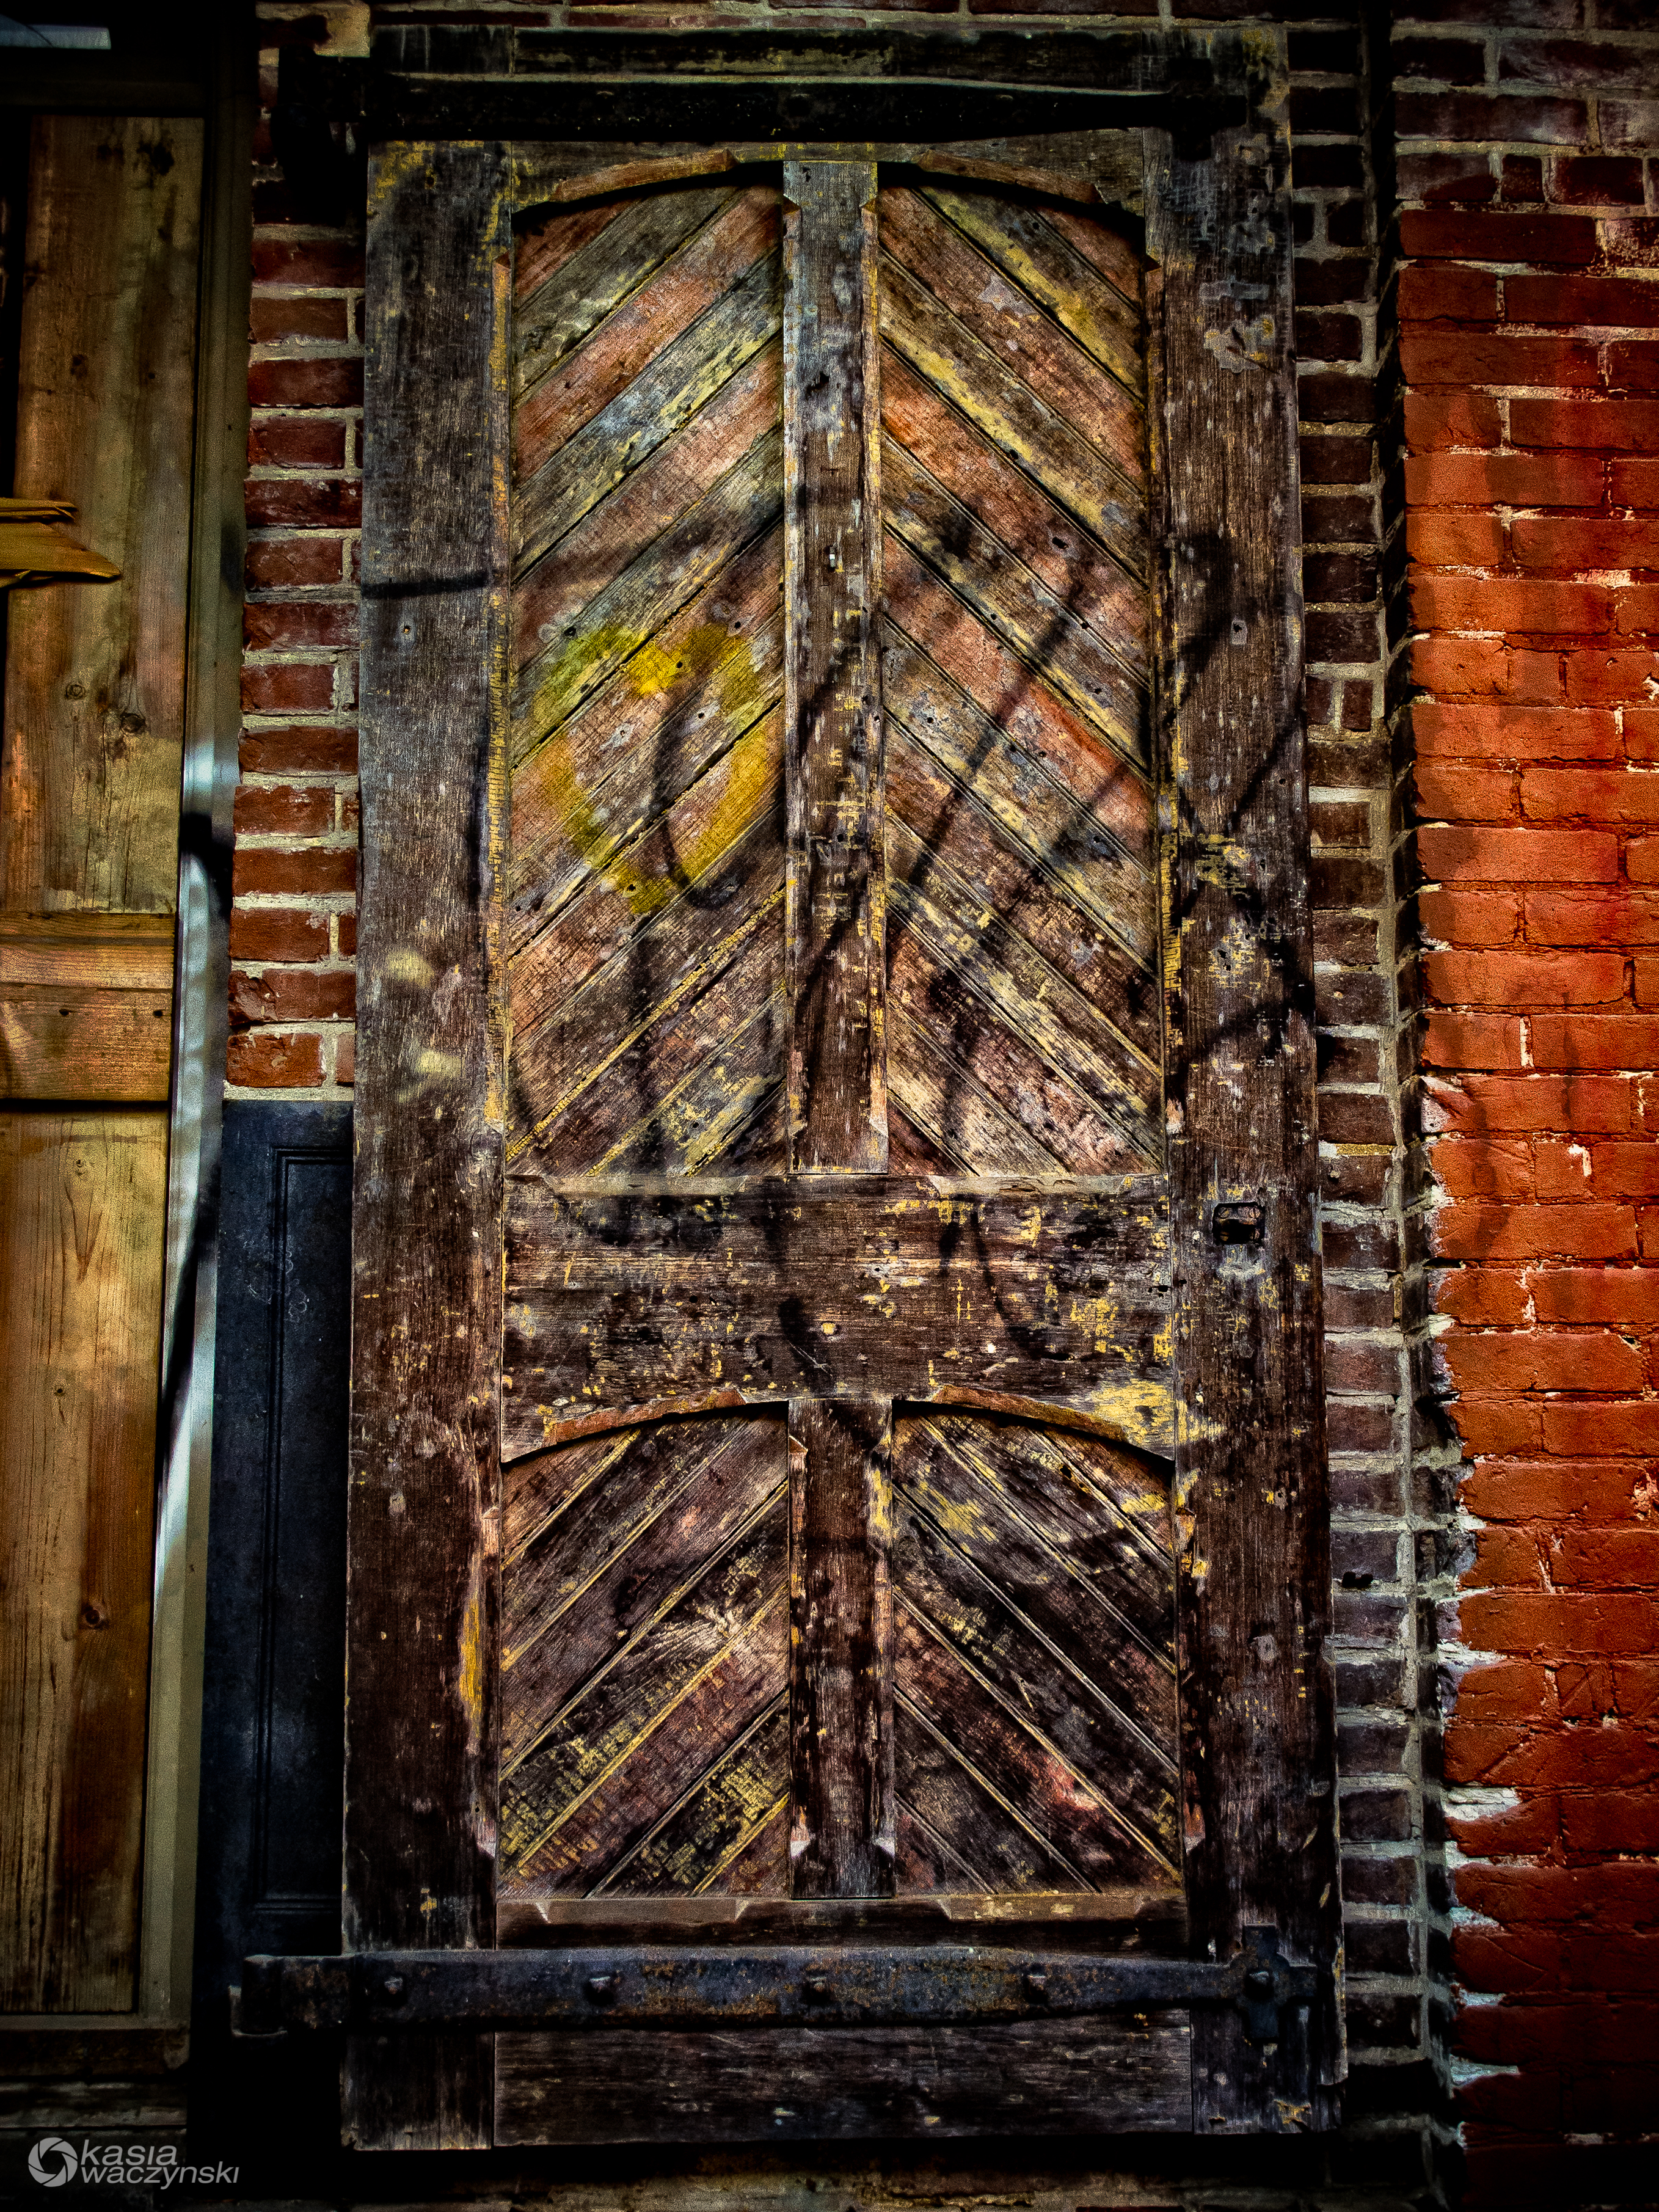 3621 #B54816 Rustic Wooden Door By Boldsoul On DeviantART image Rustic Wooden Doors 39532716